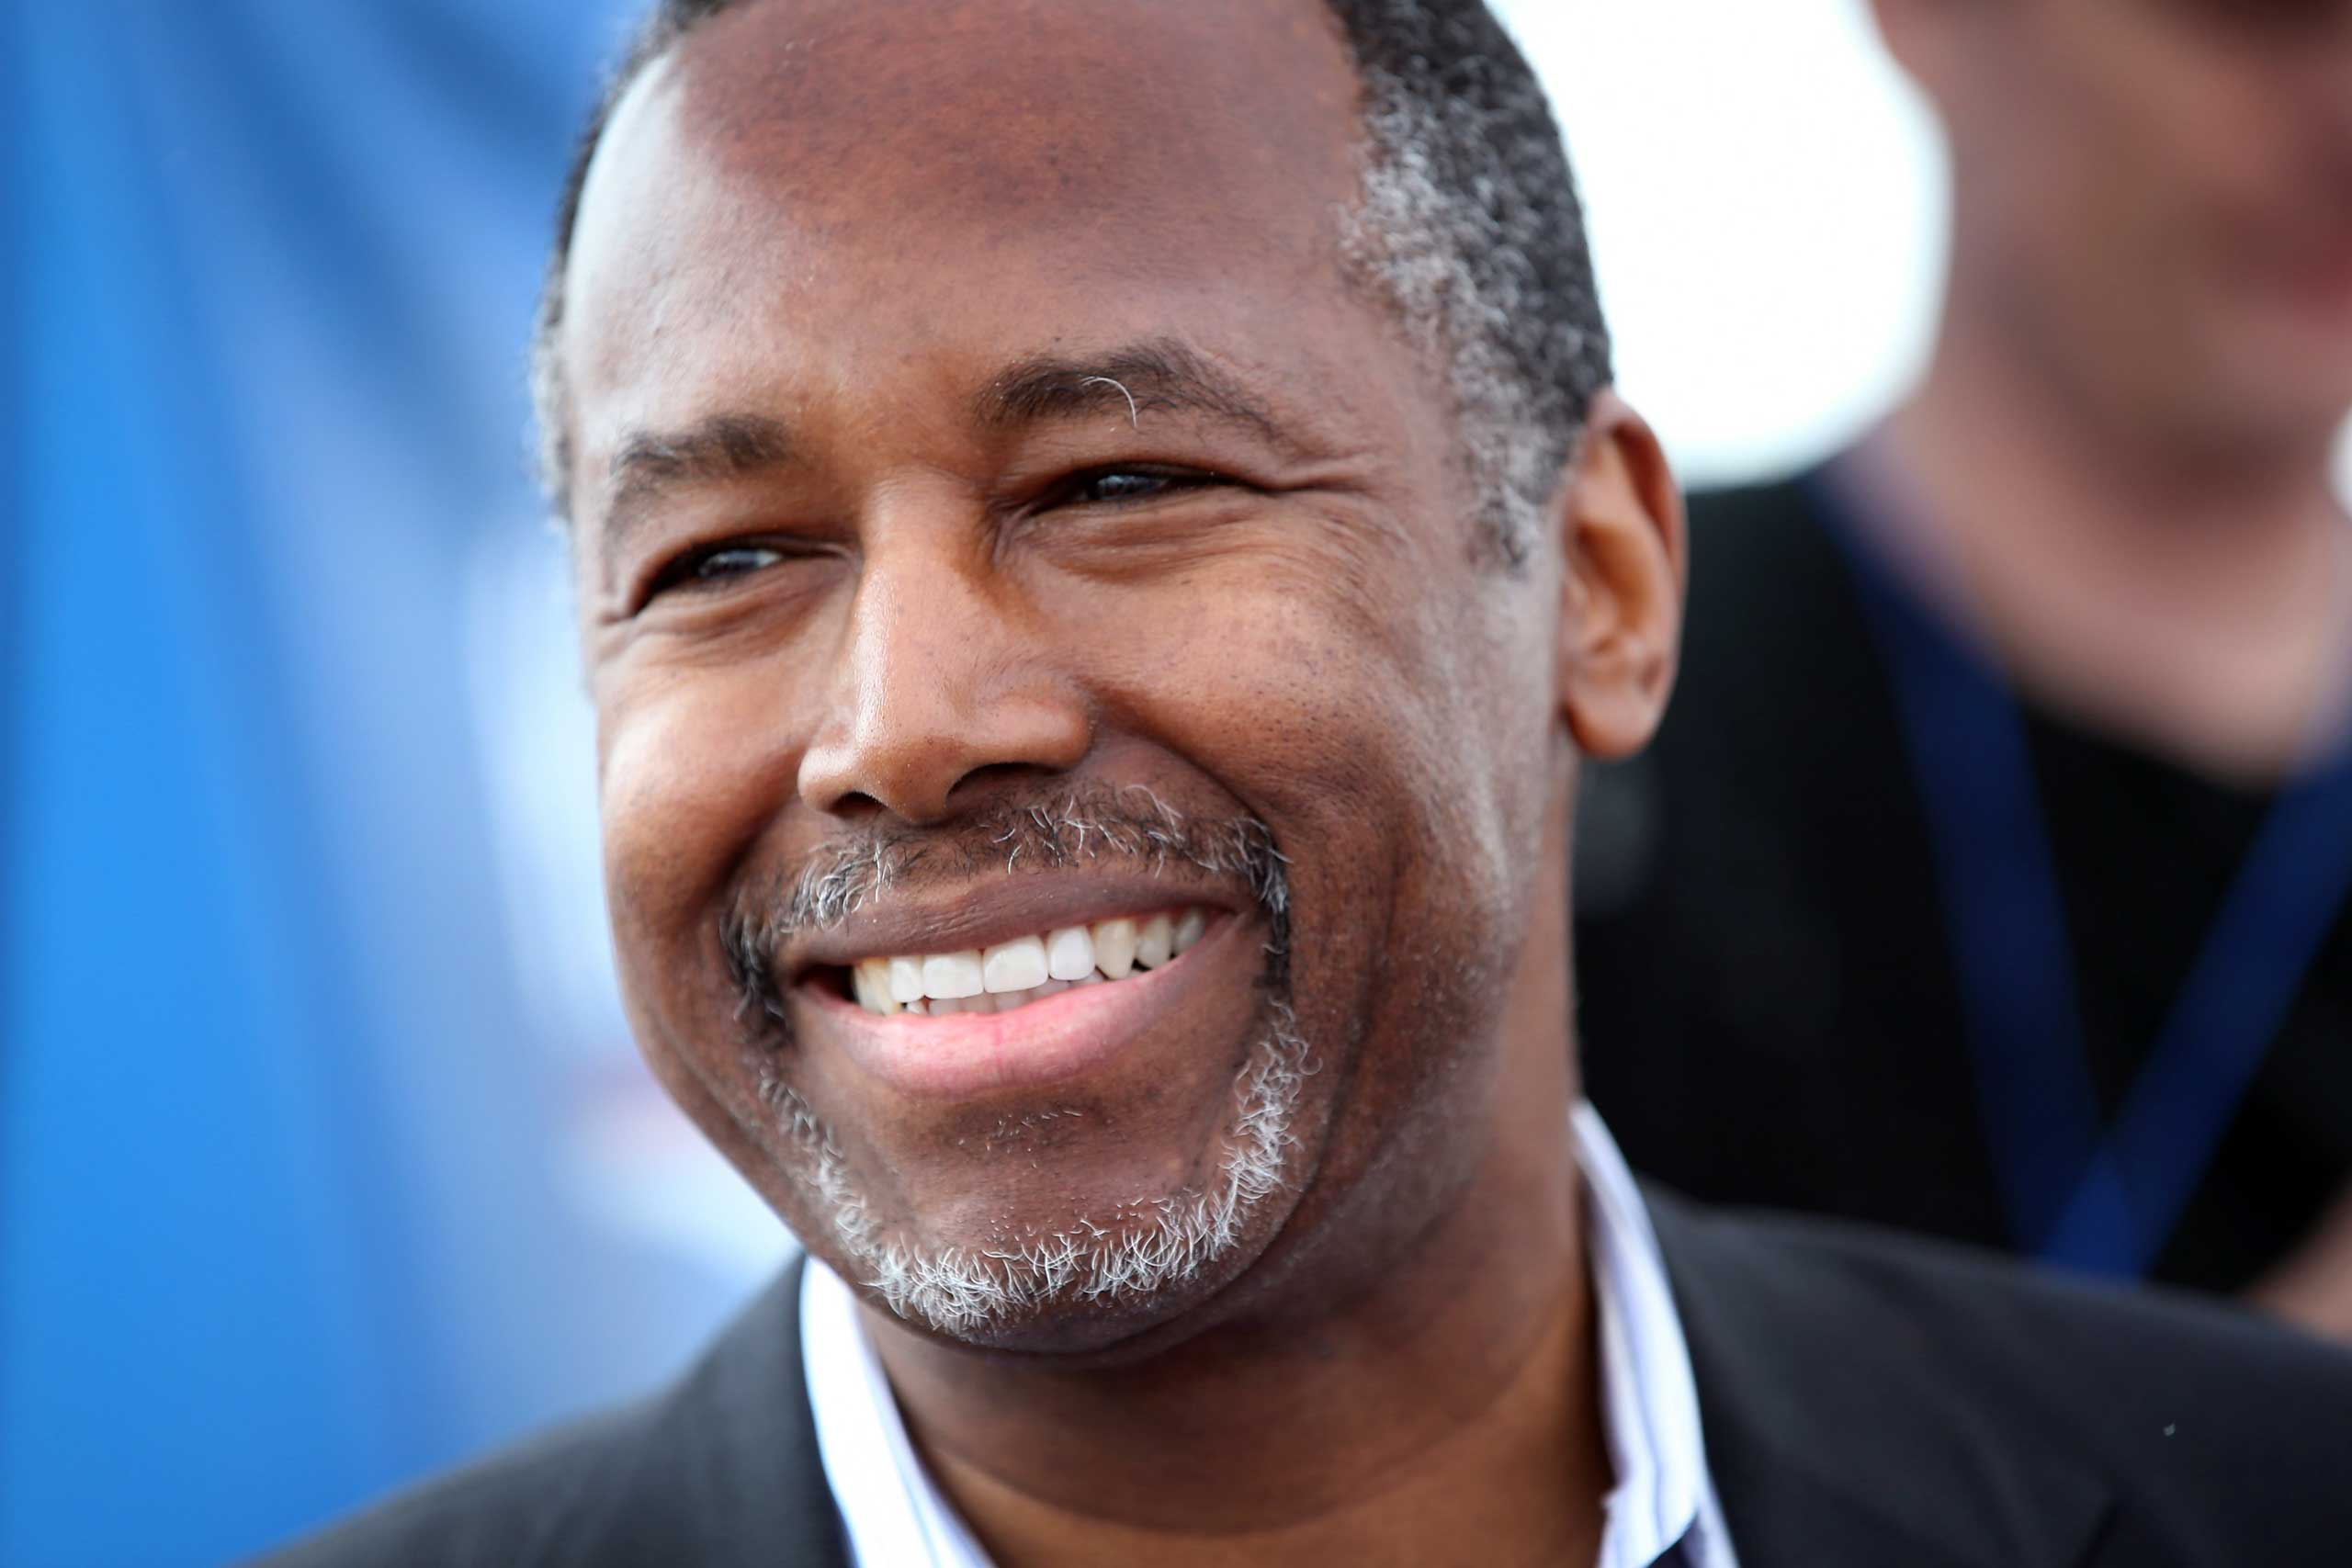 Republican presidential hopeful Dr. Ben Carson speaks at a Roast and Ride event hosted by freshman Senator Joni Ernst (R-IA) on June 6, 2015 in Boone, Iowa.